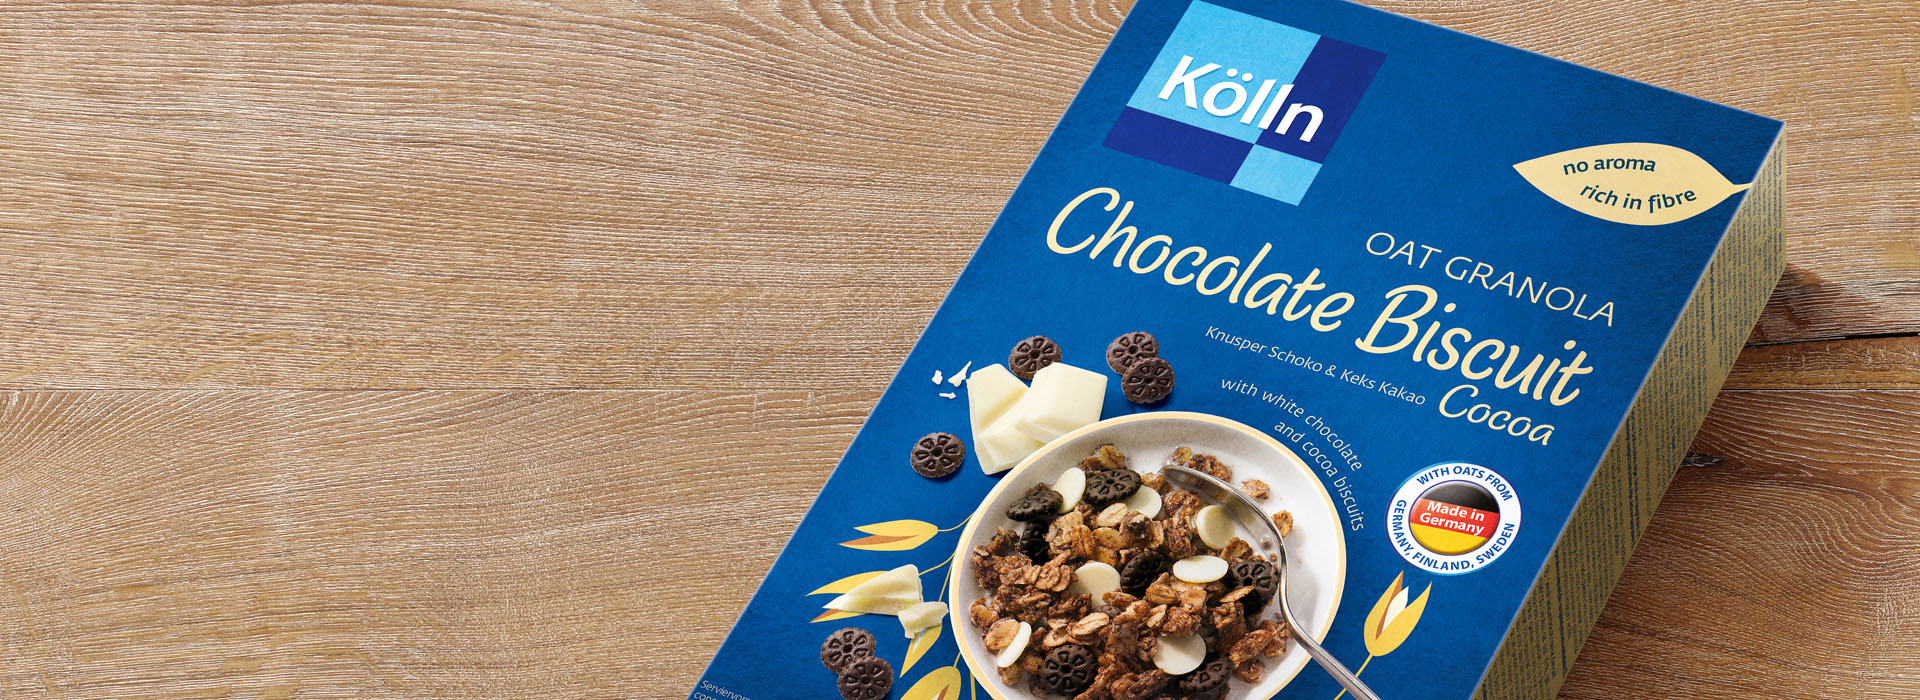 Koelln Oat Granola Chocolate Biscuit Cocoa Pack on Table